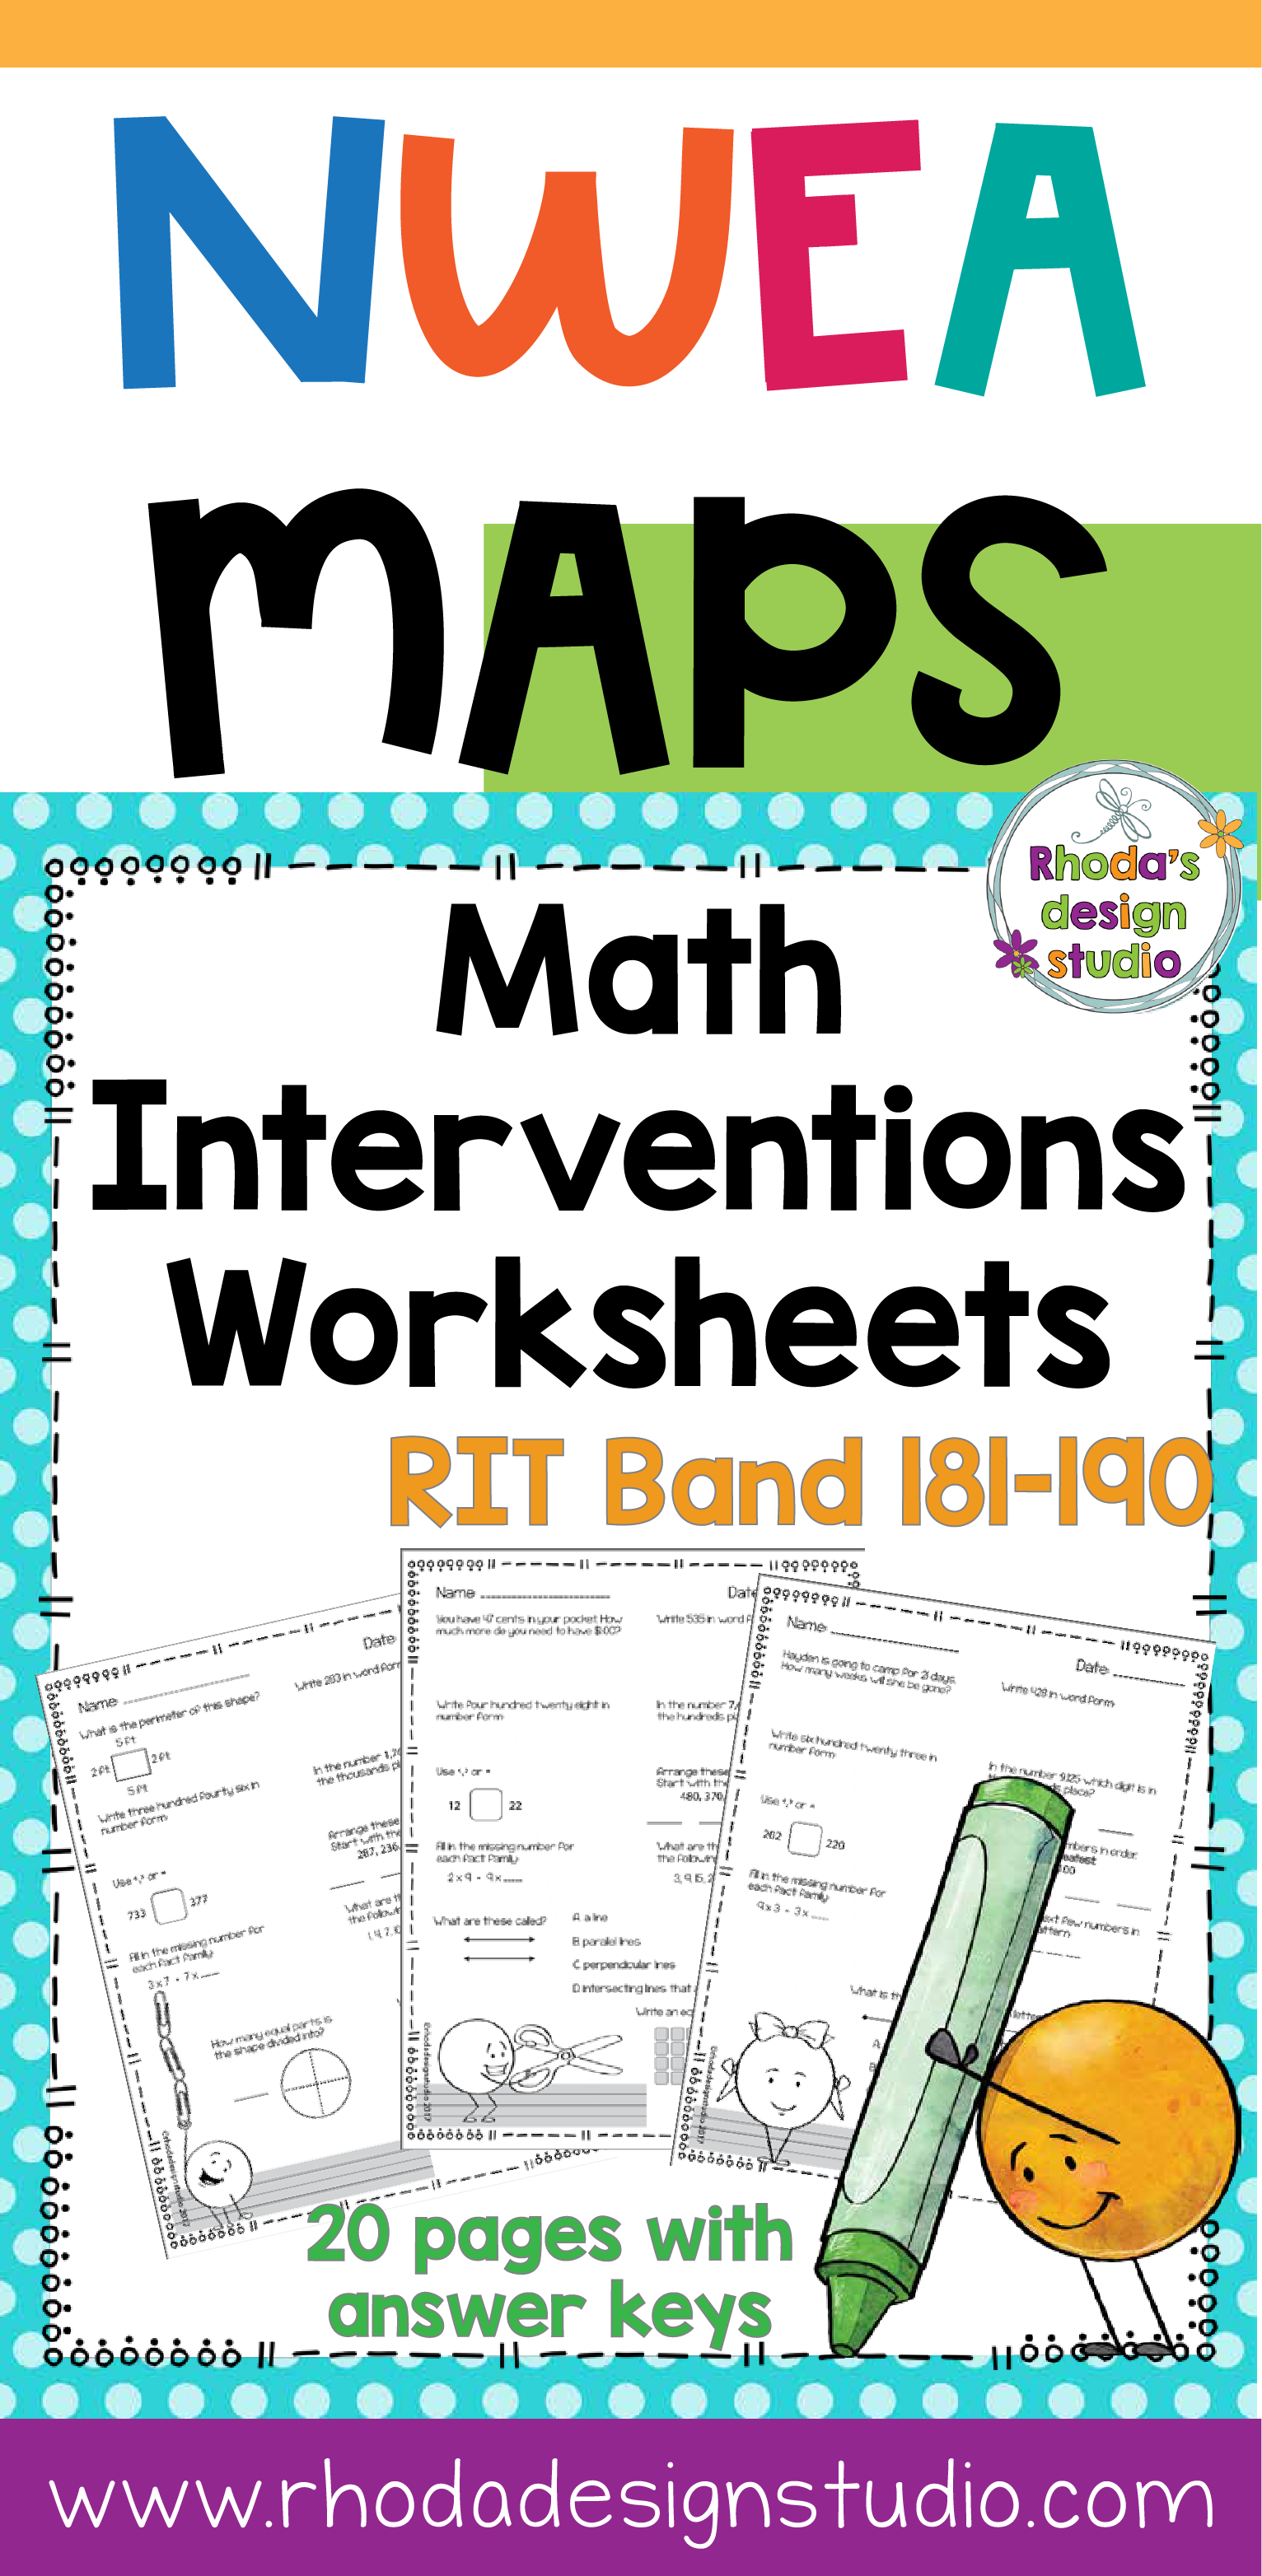 Worksheets Math Intervention Worksheets nwea map prep math practice worksheets rit band 181 190 task cards that can be used for test or interventions these cover numbers and operations measurement da